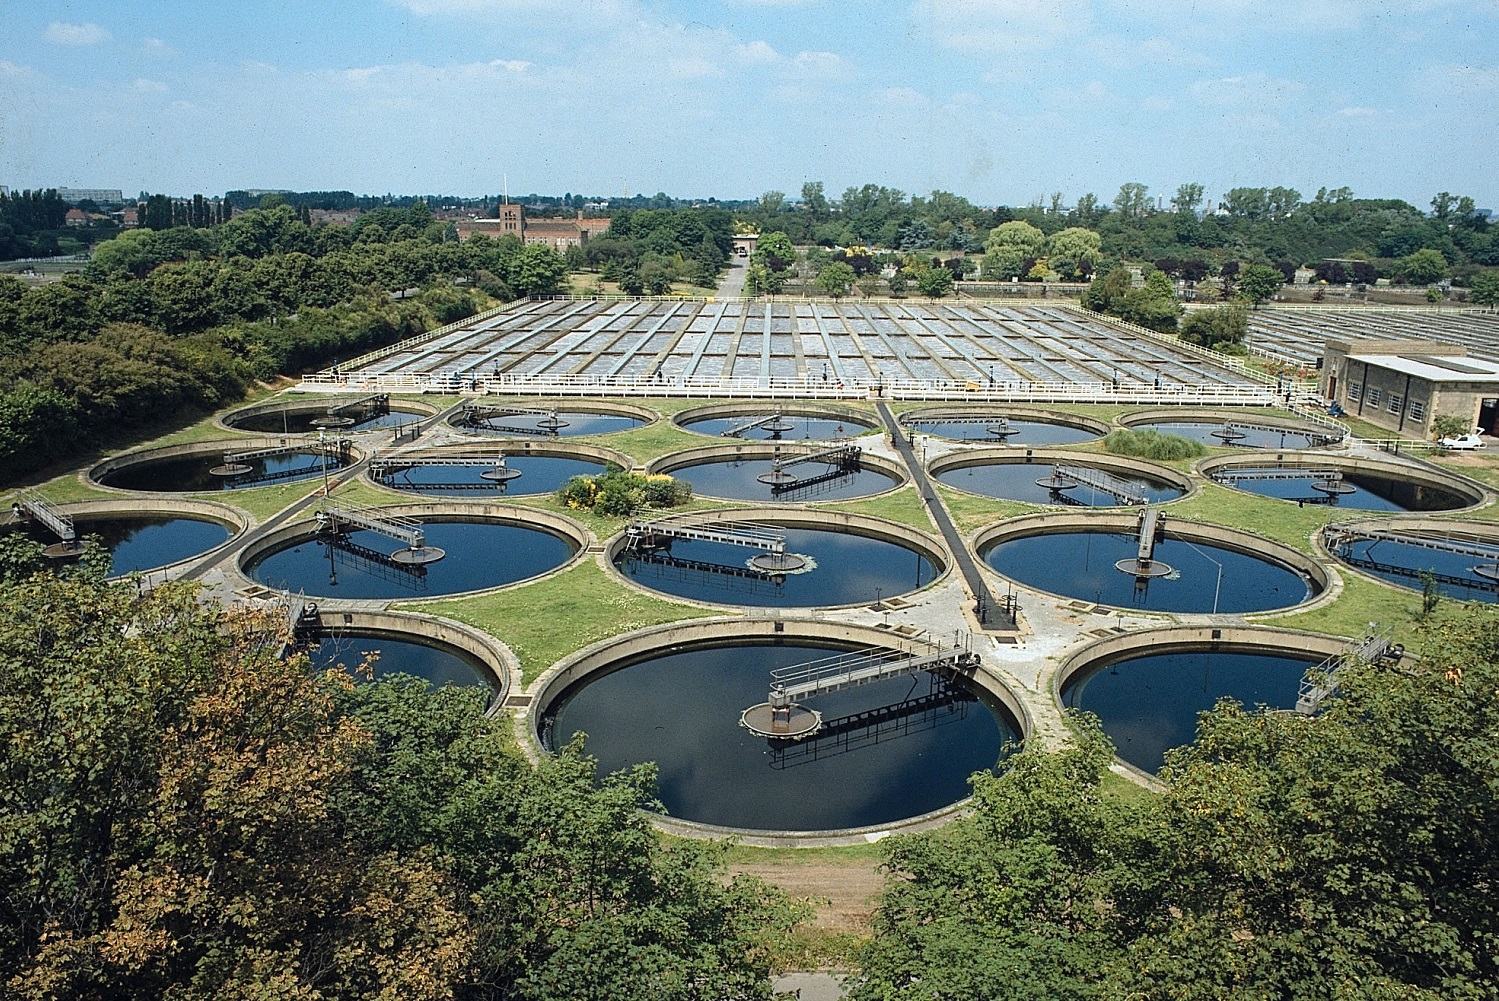 Mogden-sewage-treatment-works